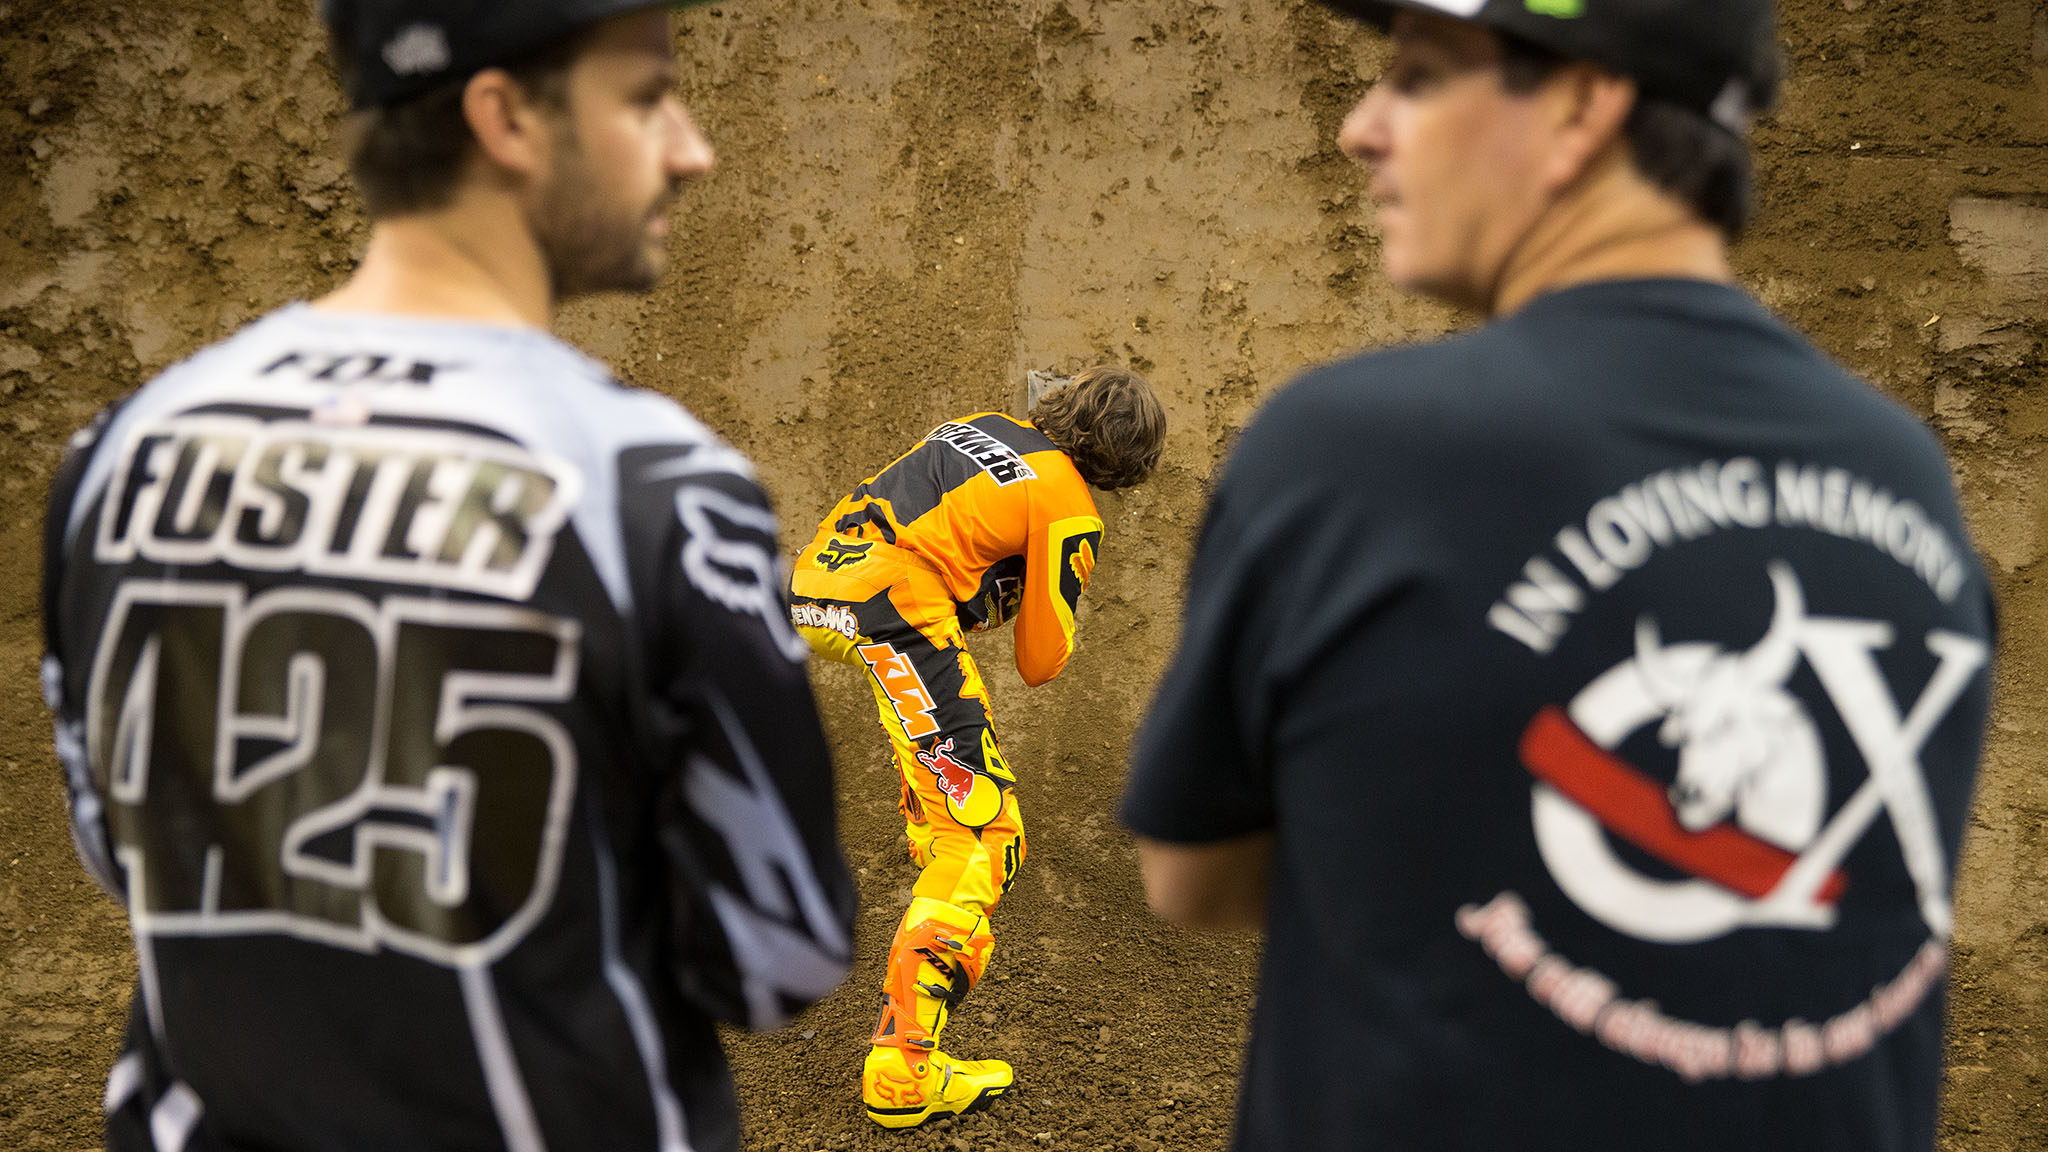 Ronnie Renner, who holds the Moto X Step Up record with his X Games L.A. 2012 gold-medal jump of 47 feet, prepares the Step Up ramp for Friday's competition.